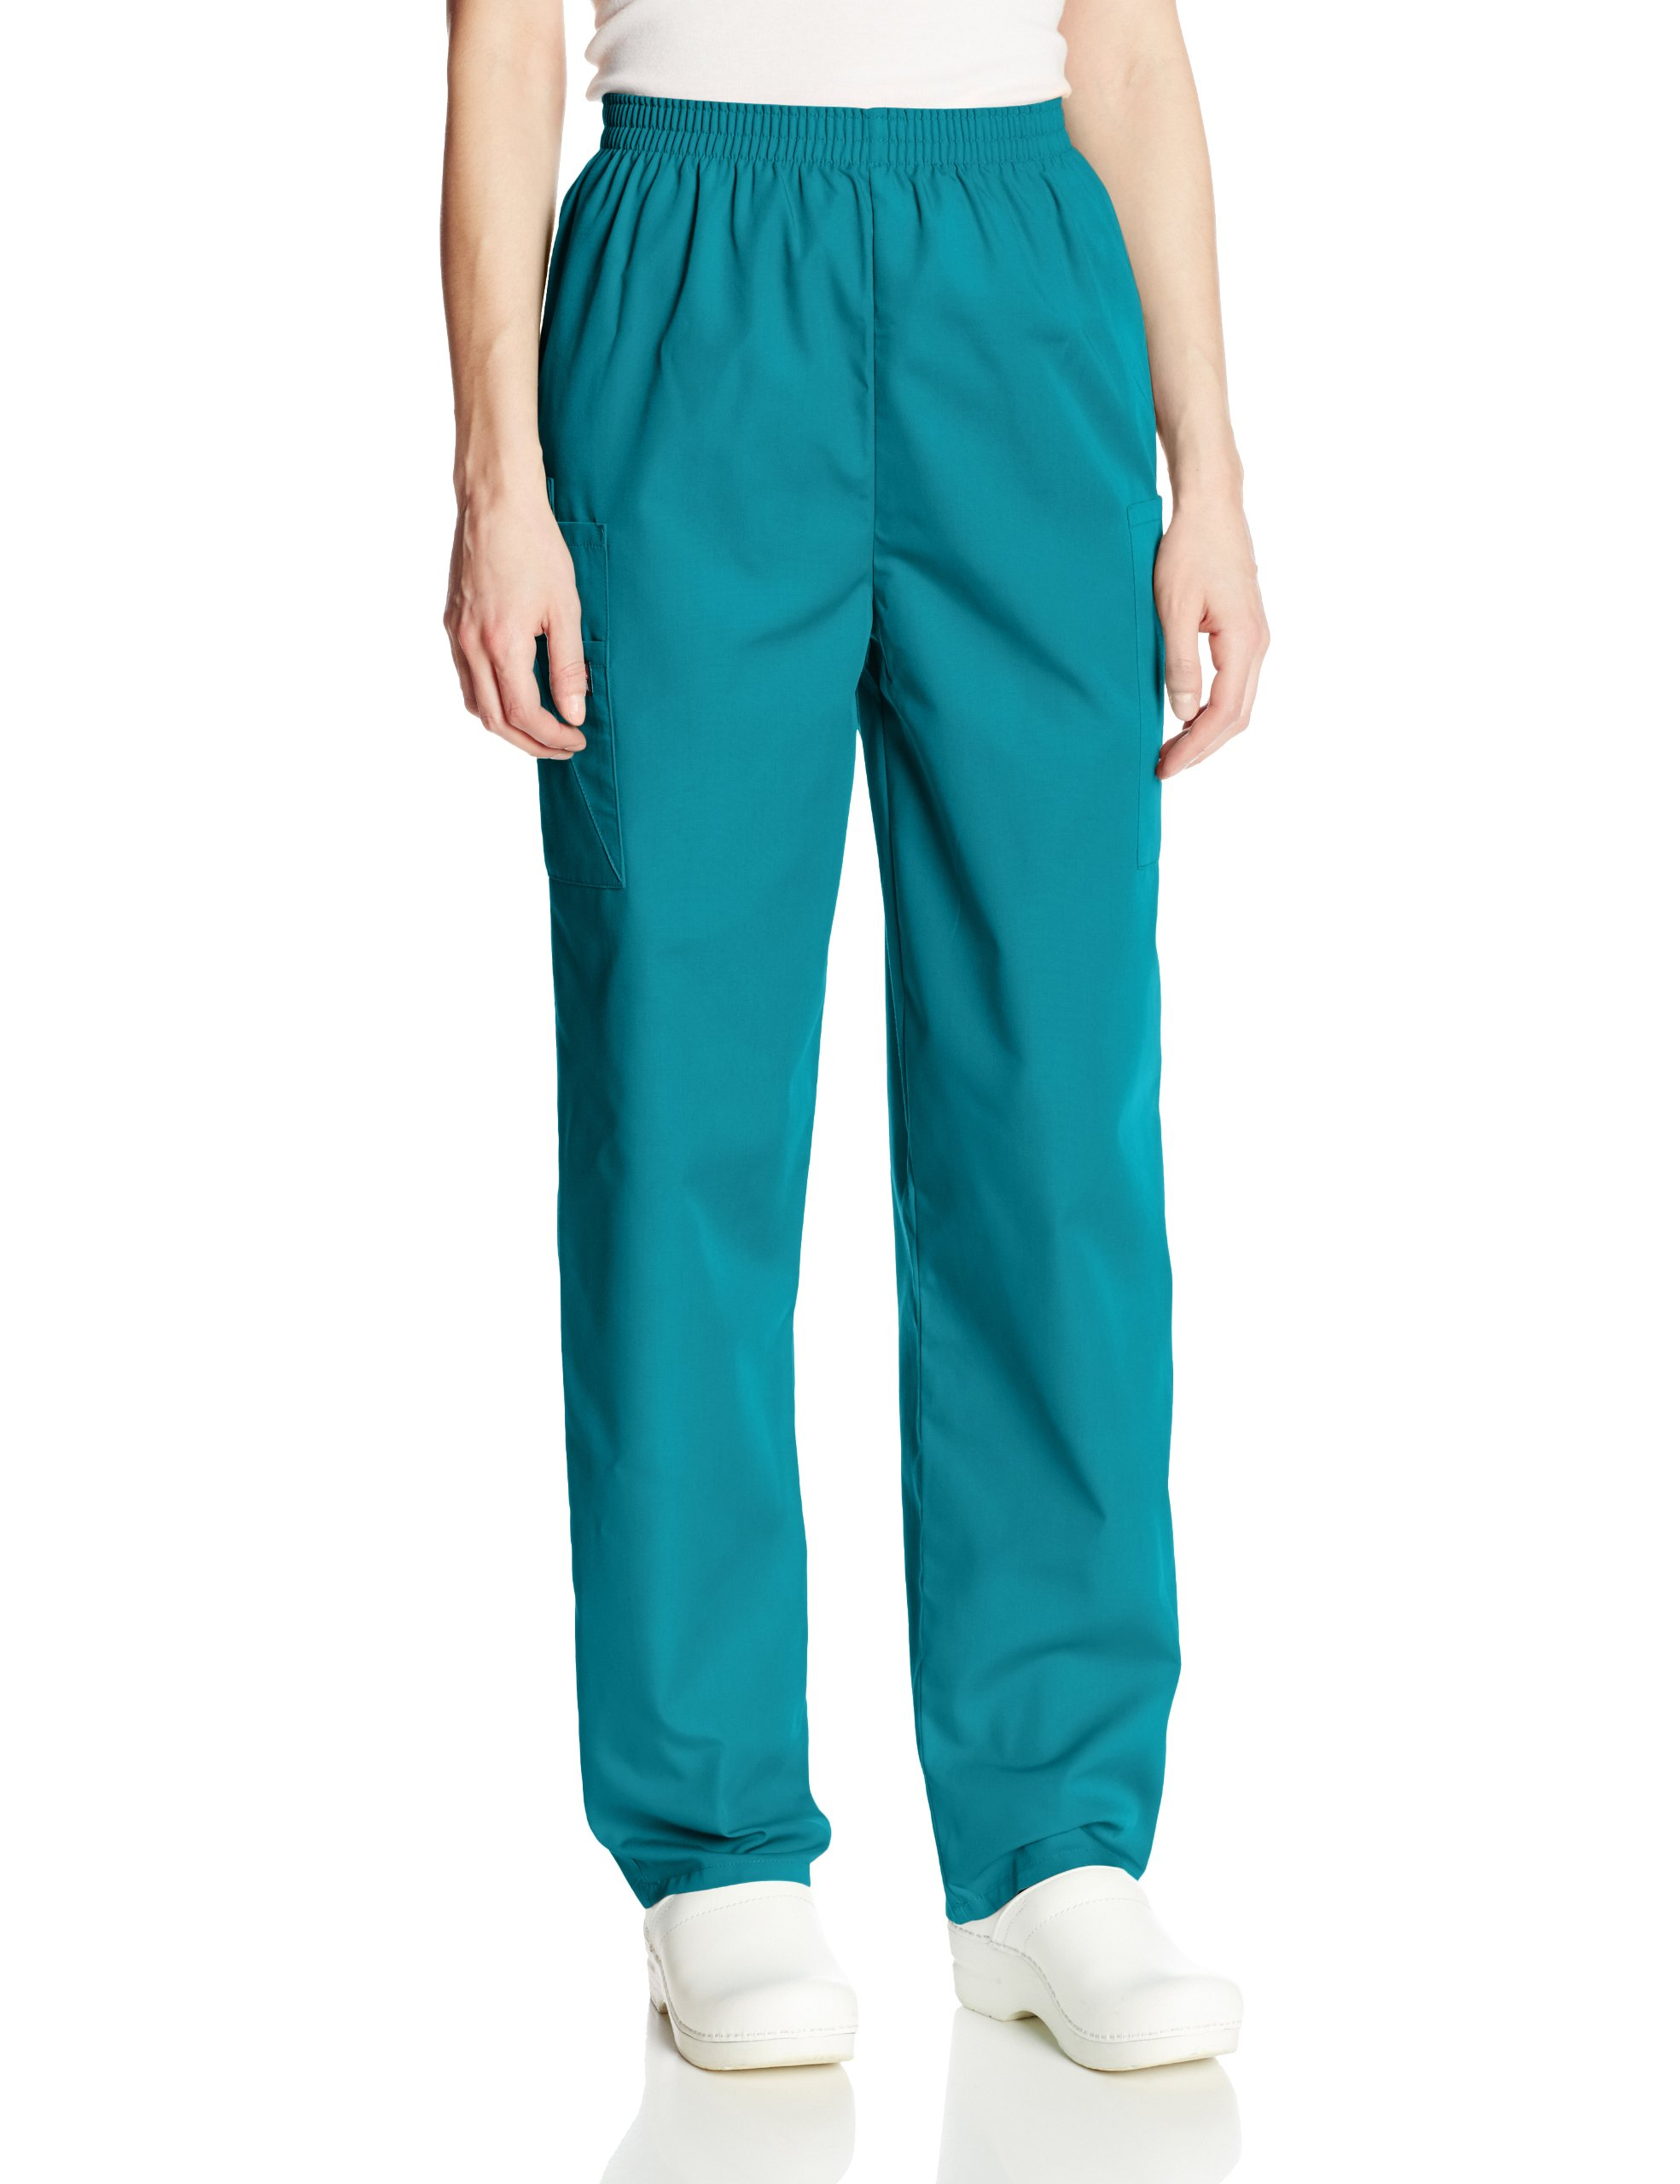 Cherokee Women's Workwear Scrubs Pull-On Cargo Pant, Teal Blue, X-Small-Petite